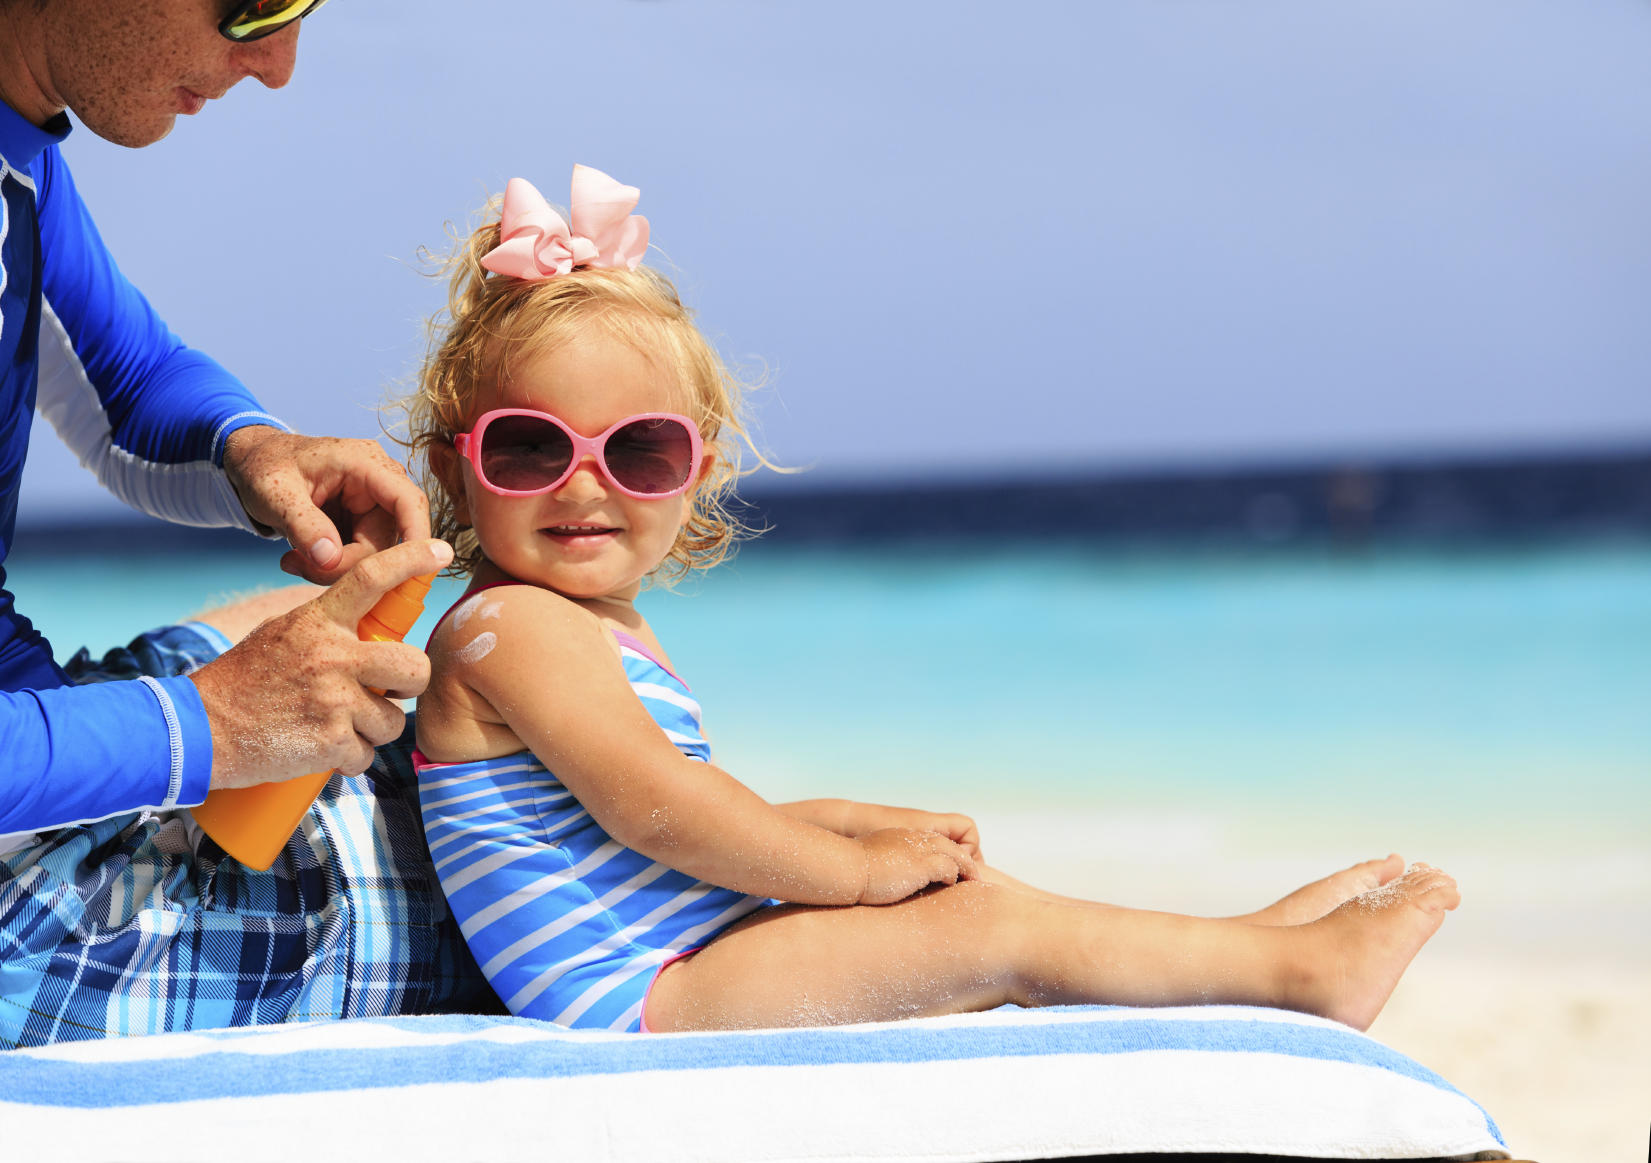 6 Games To Make Putting Sunscreen On Kids More Fun For